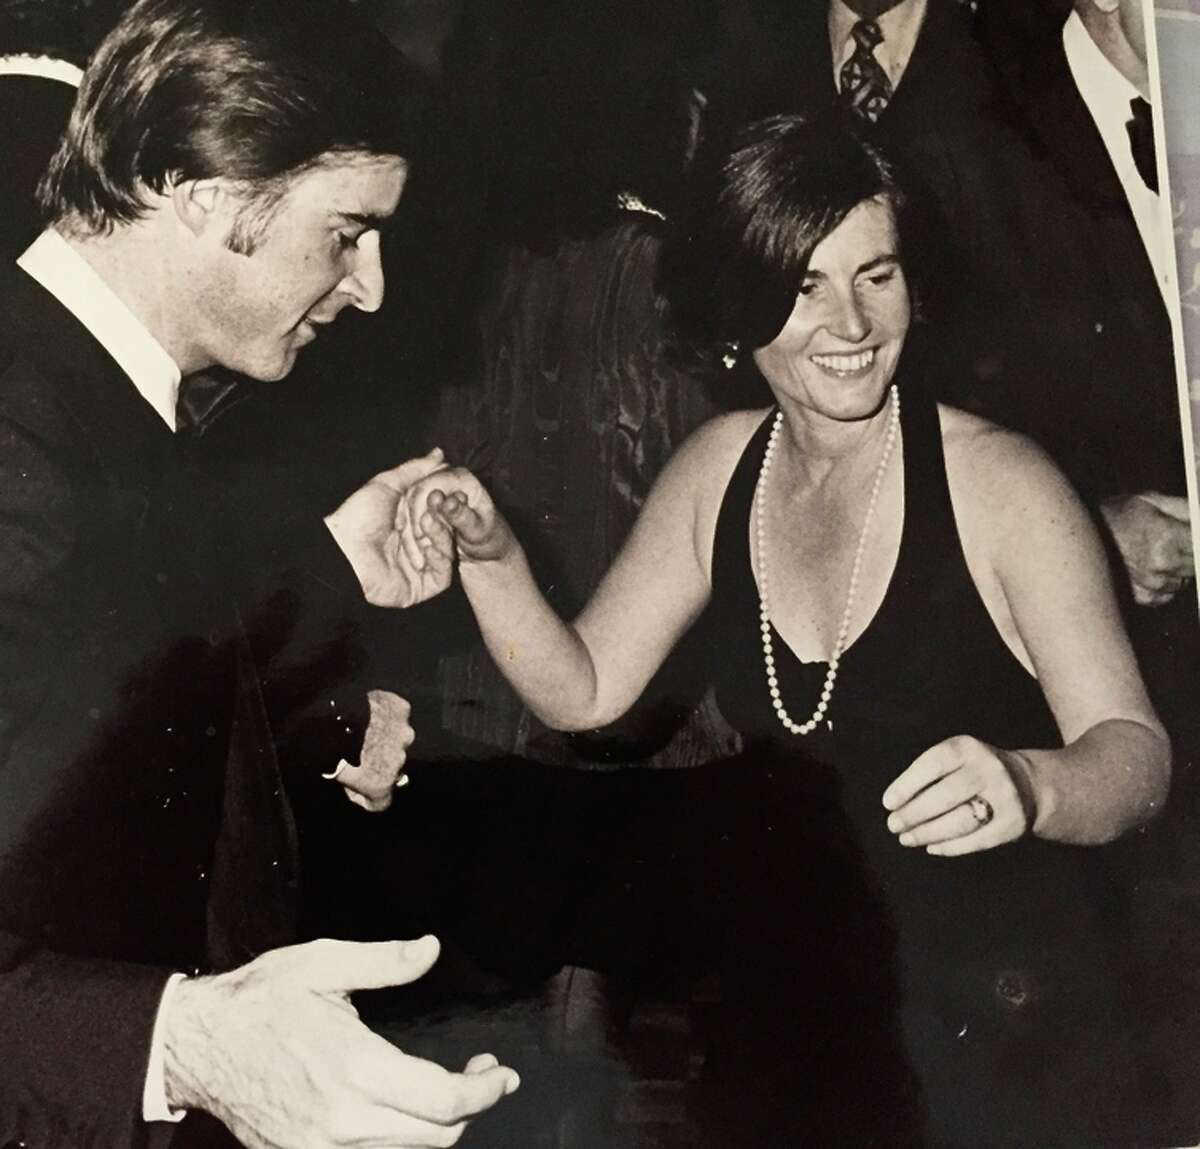 Cynthia Brown Kelly (right) and her brother, Gov. Jerry Brown, dance at a fundraiser in the '70s.